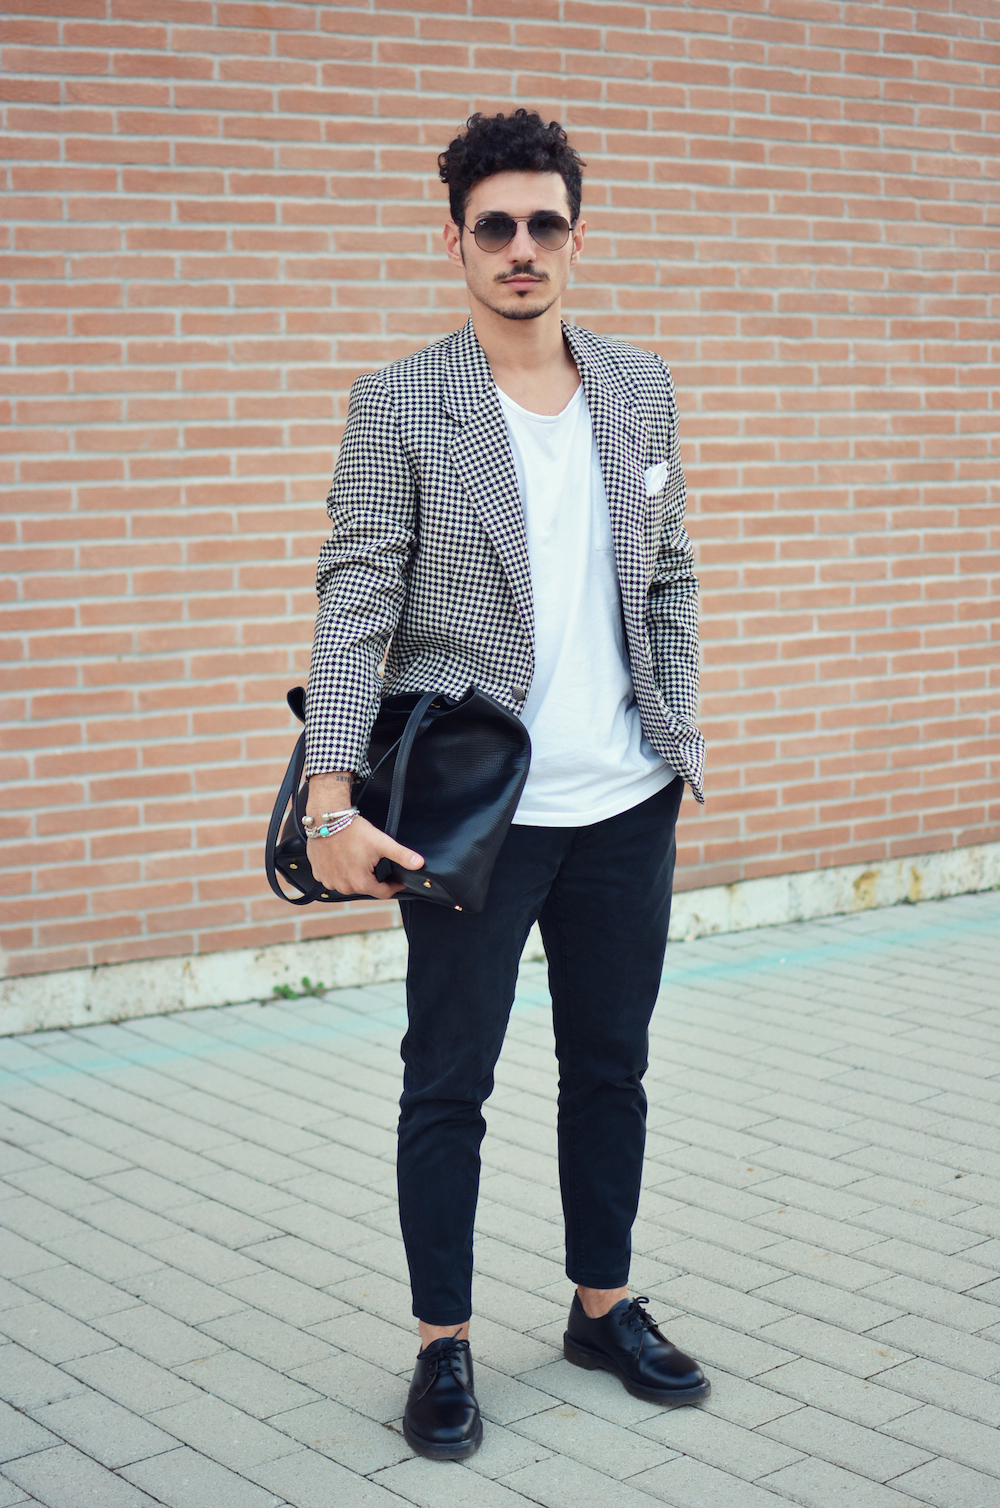 Blazer-and-T-shirt..-6 120+ Fashion Trends and Looks for College Students in 2021